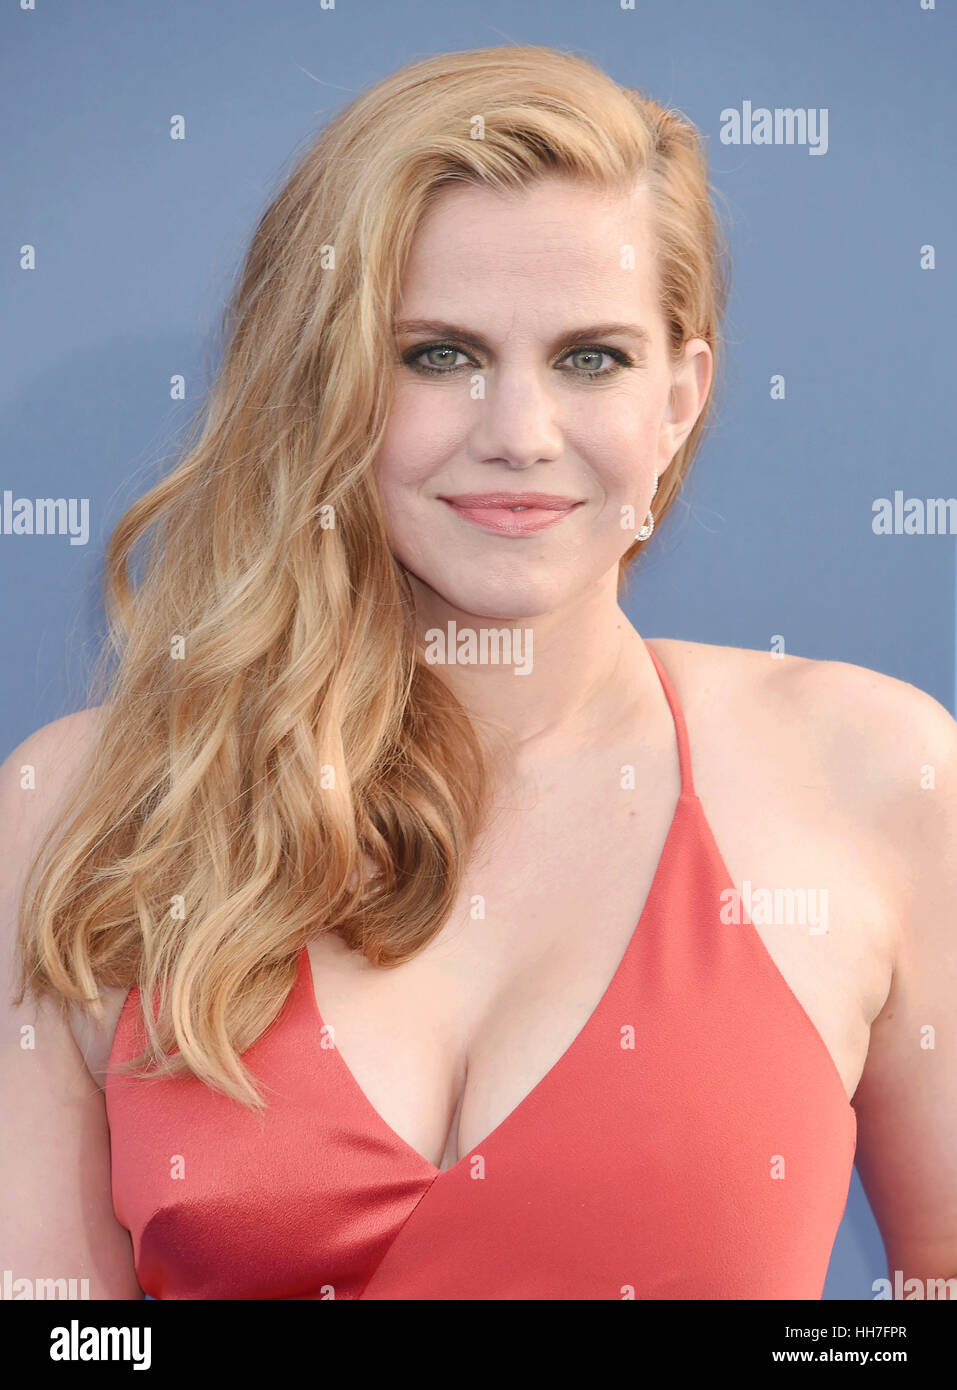 Images Anna Chlumsky nudes (88 foto and video), Tits, Leaked, Twitter, legs 2019